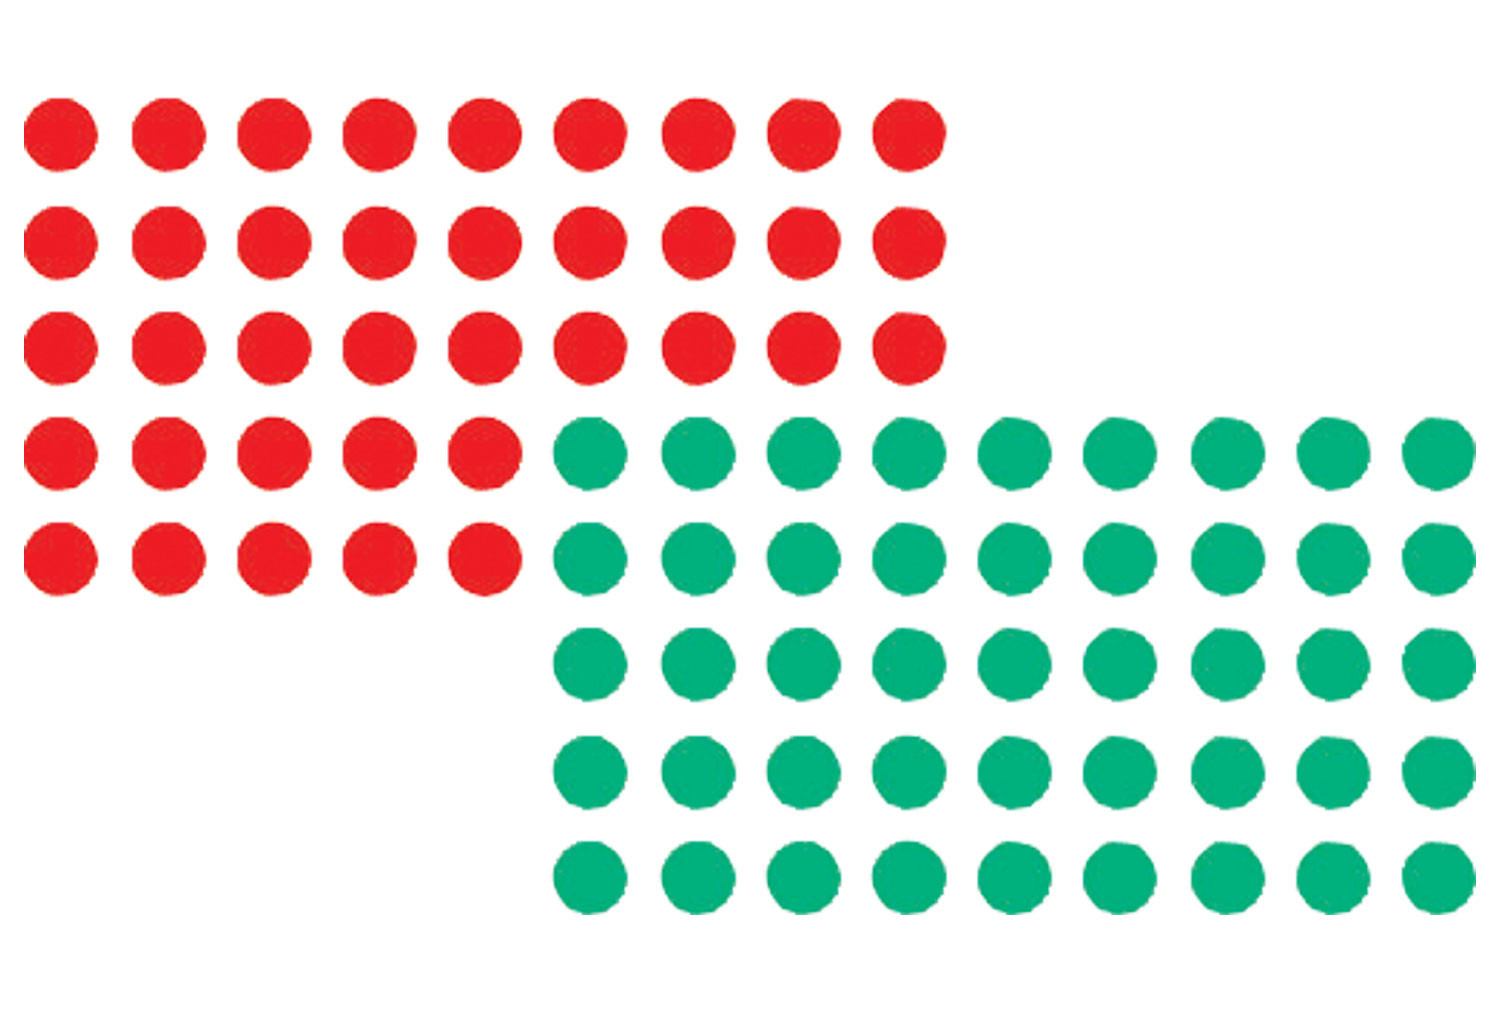 Pack Of 520 Franken Self Adhesive Marker Dots Red/Green